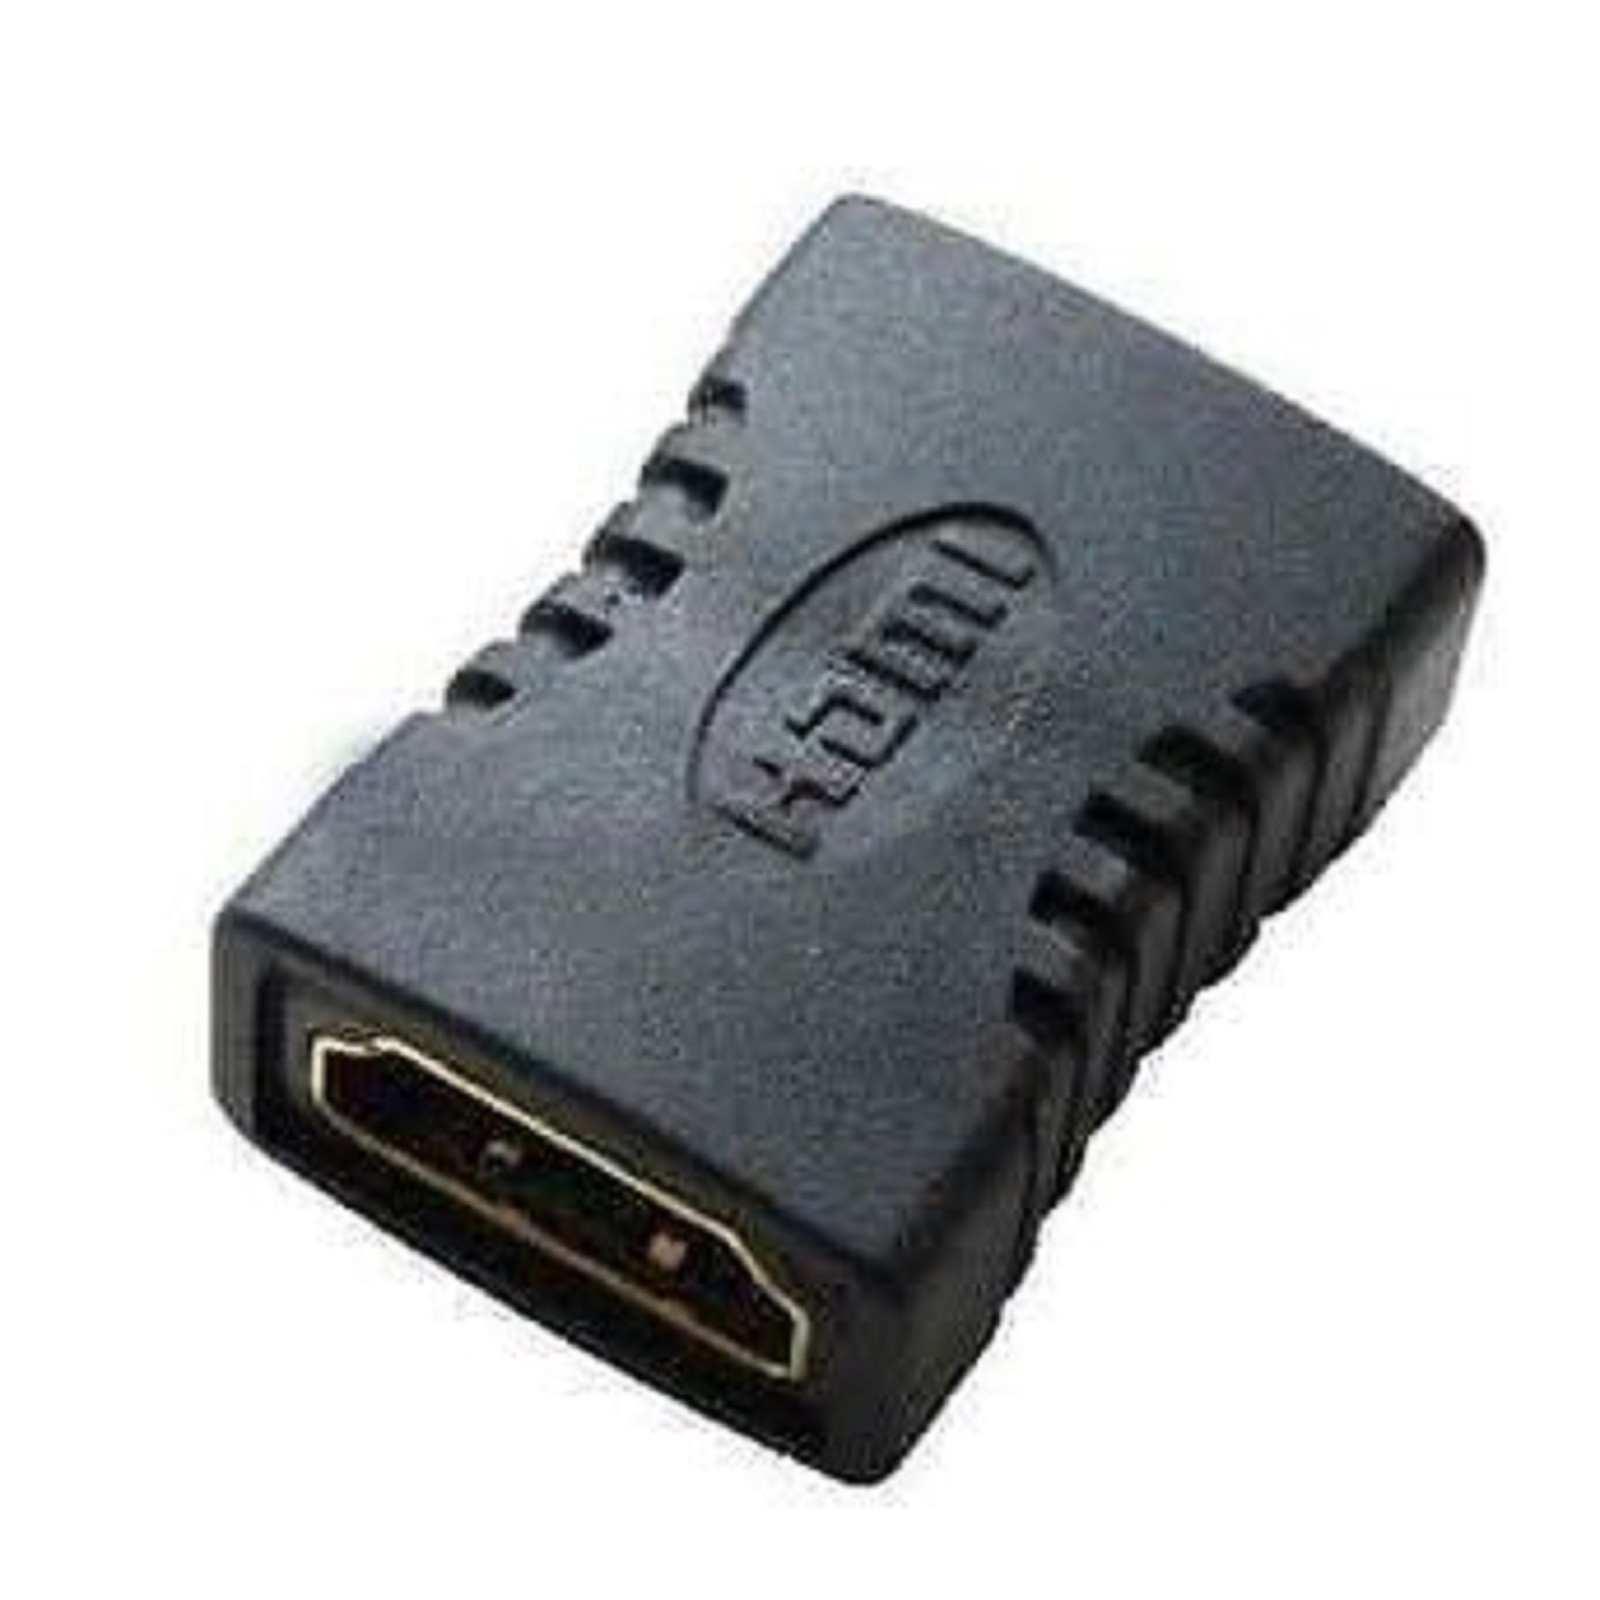 Adapter HDMI Cable Joint Extension Extension Female/Female 1080p